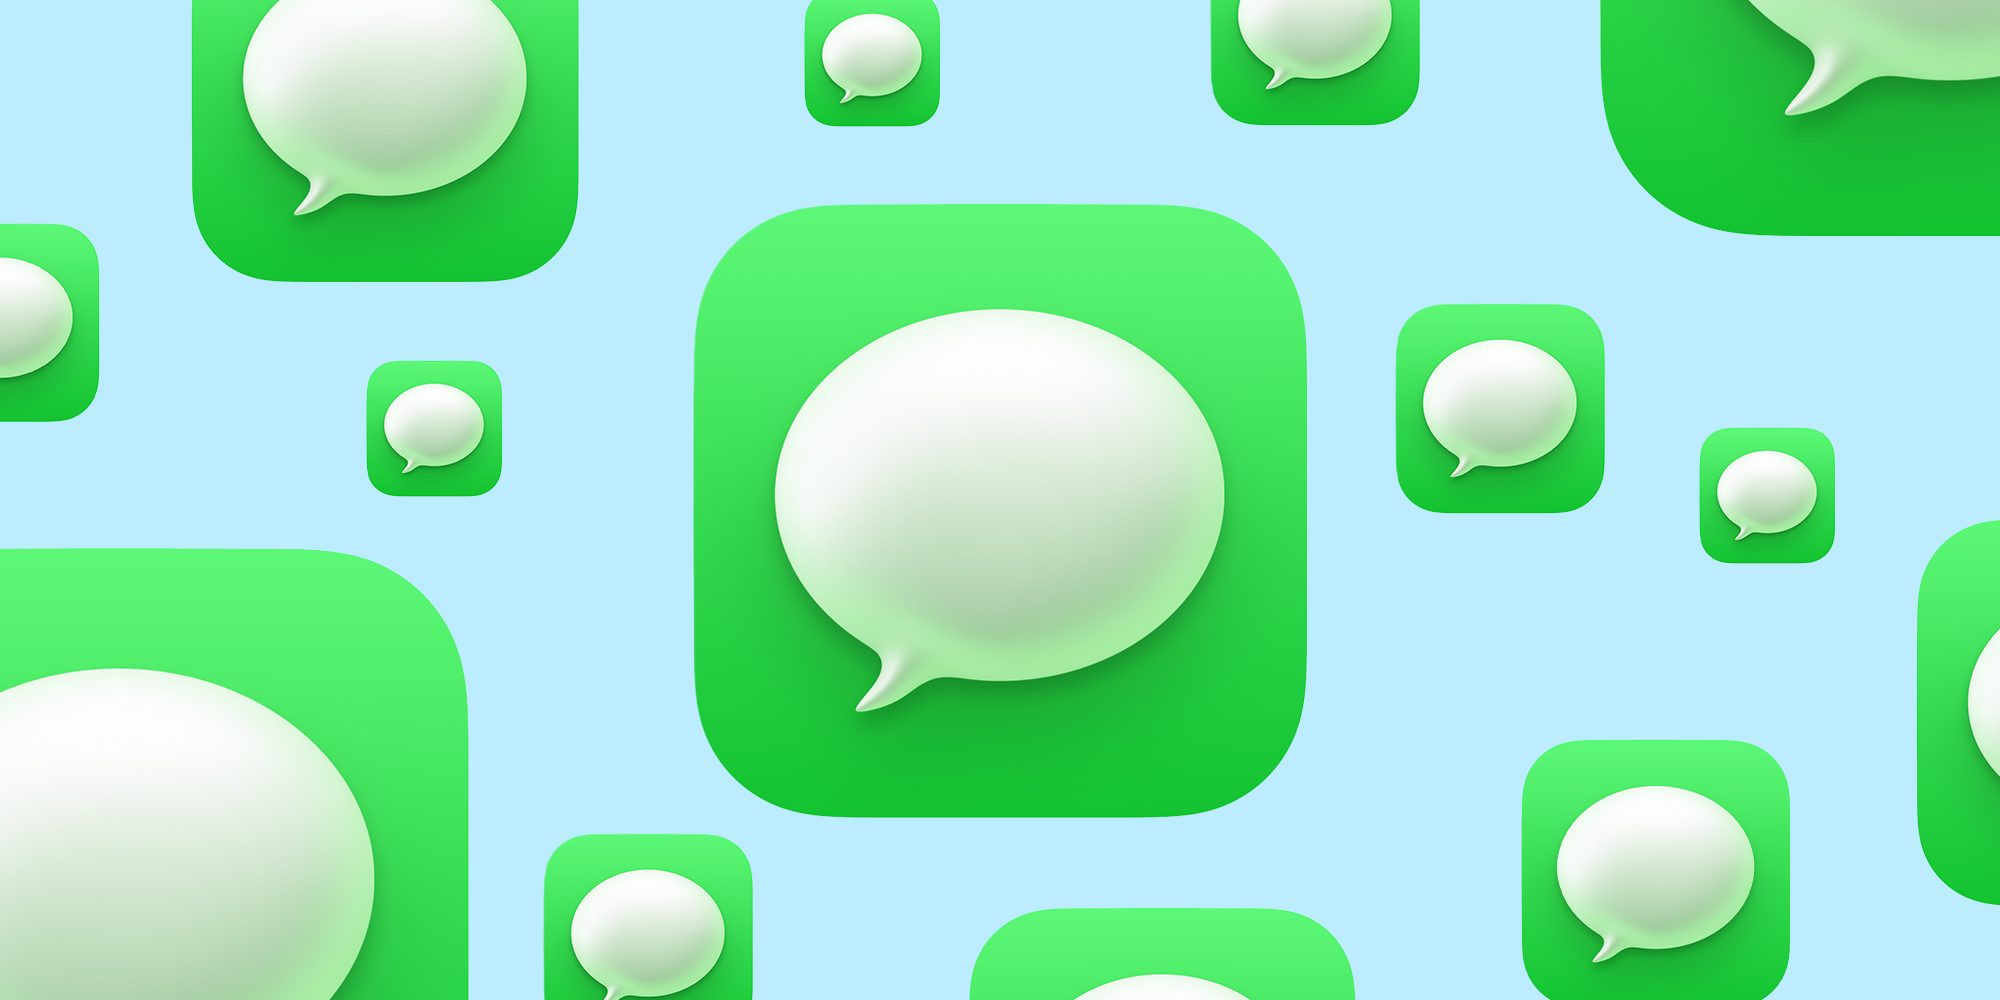 ❤ REPORT : active zero-click iMessage exploit in the wild targeting iPhones running the latest software, used against activists and journalists